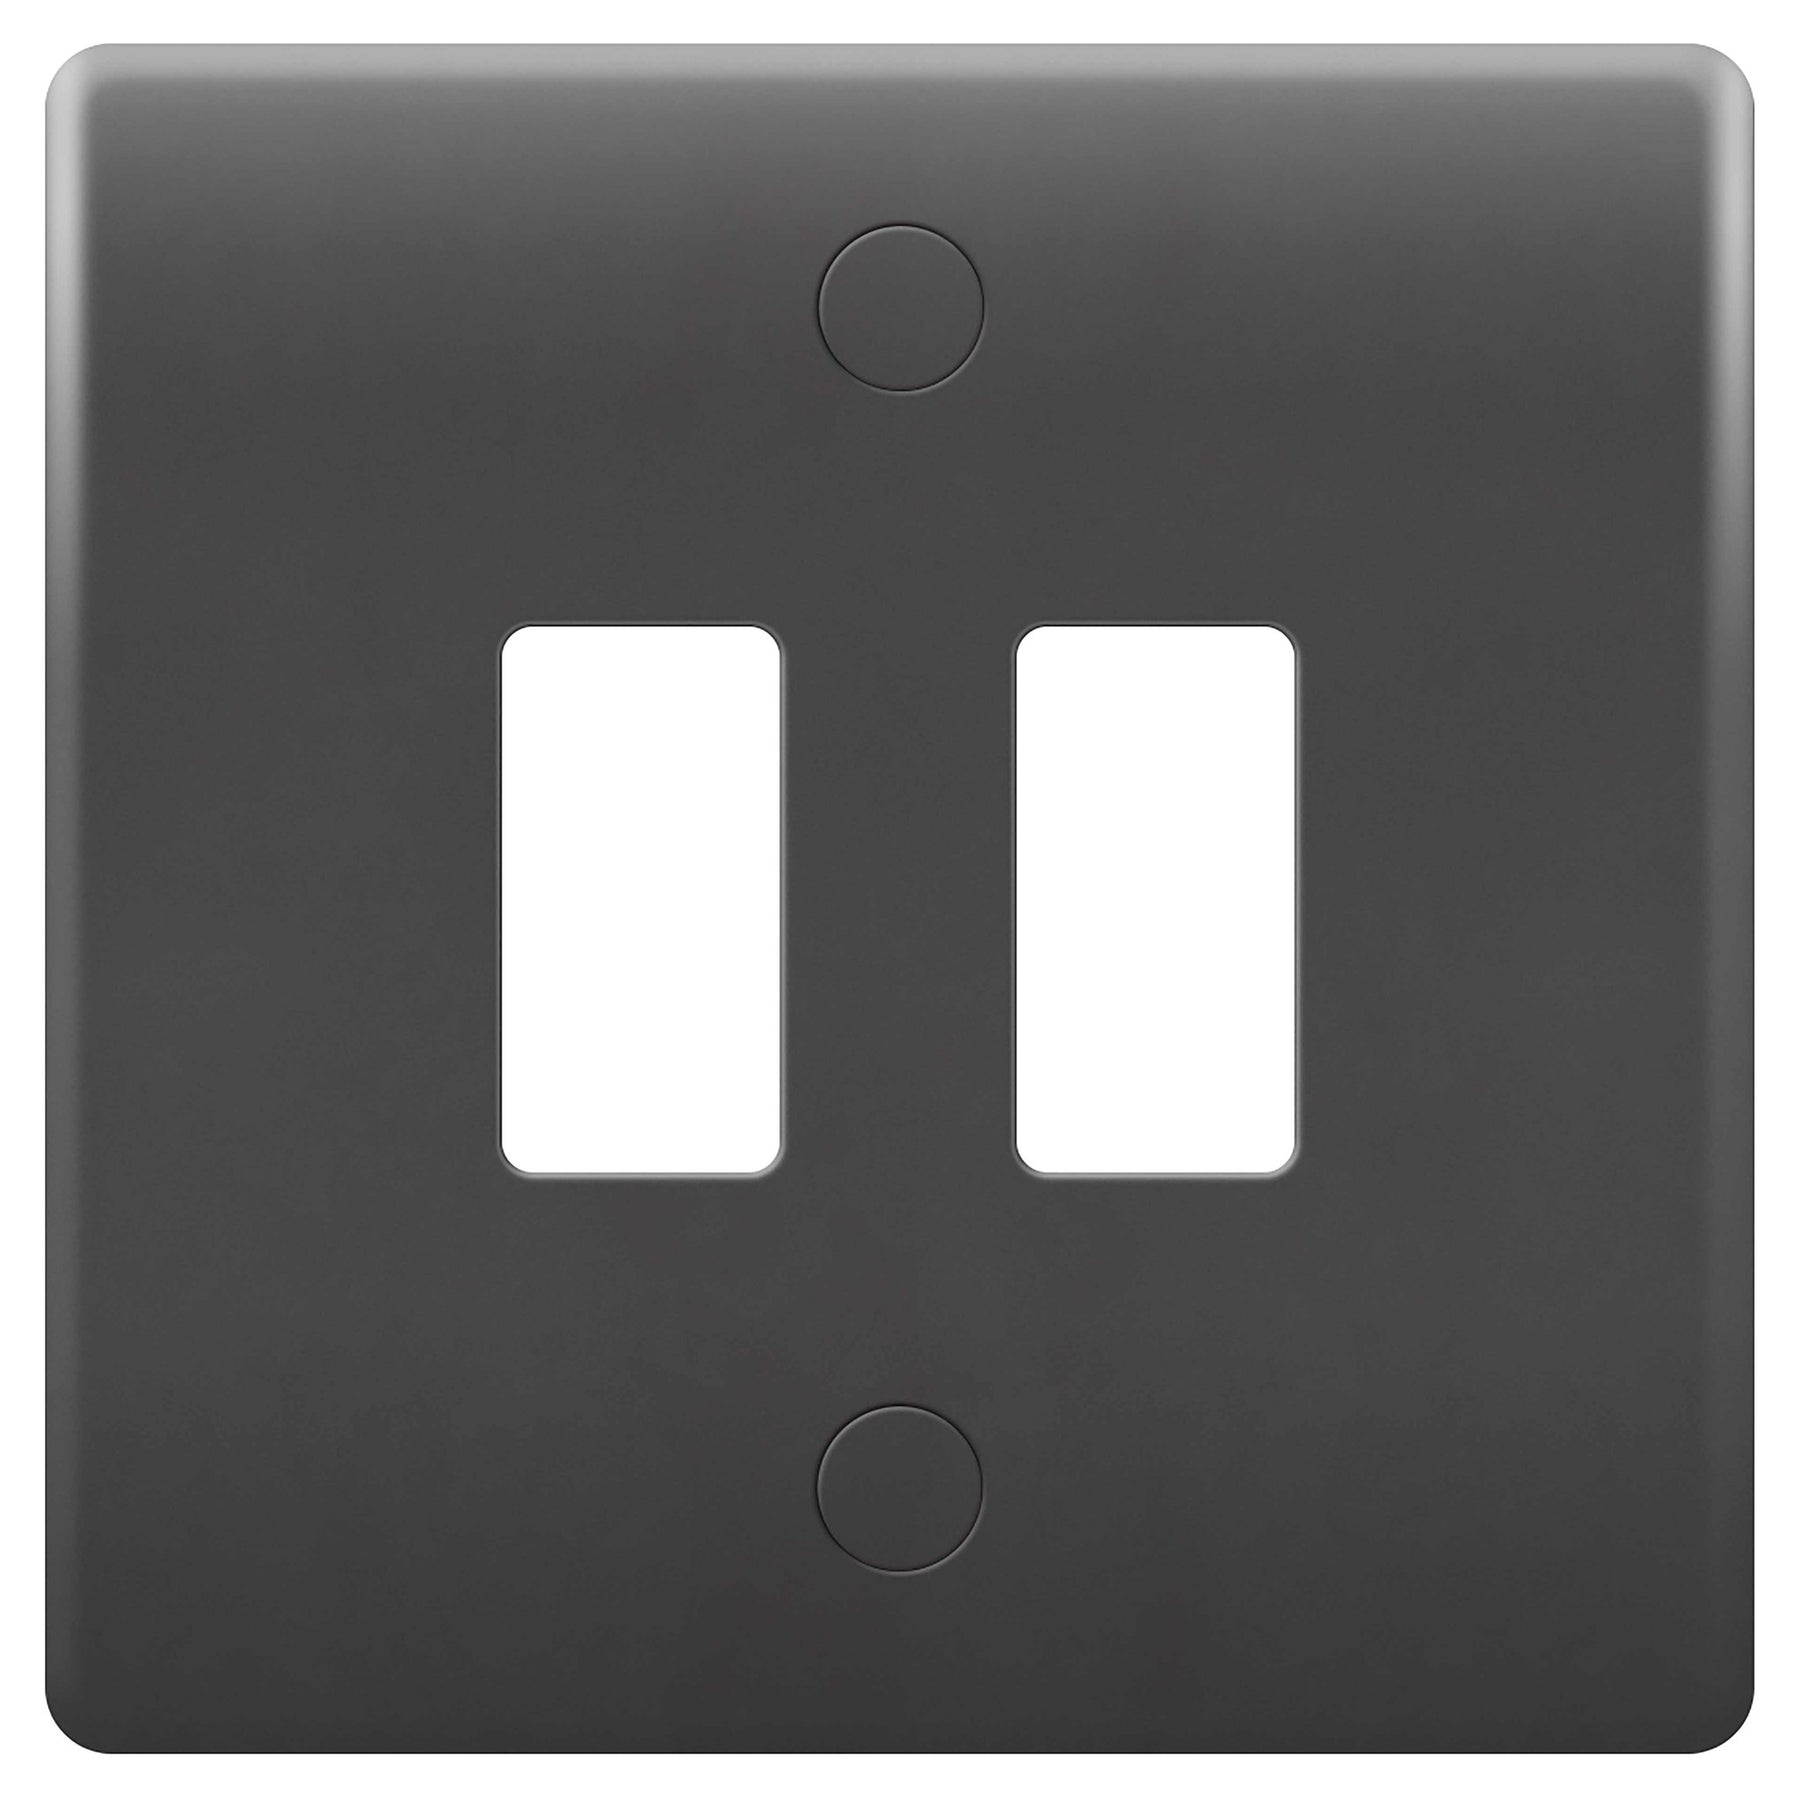 BG Nexus GPM2-01 PART M Grid 2 Gang Front Plate - Grey - BG - sparks-warehouse